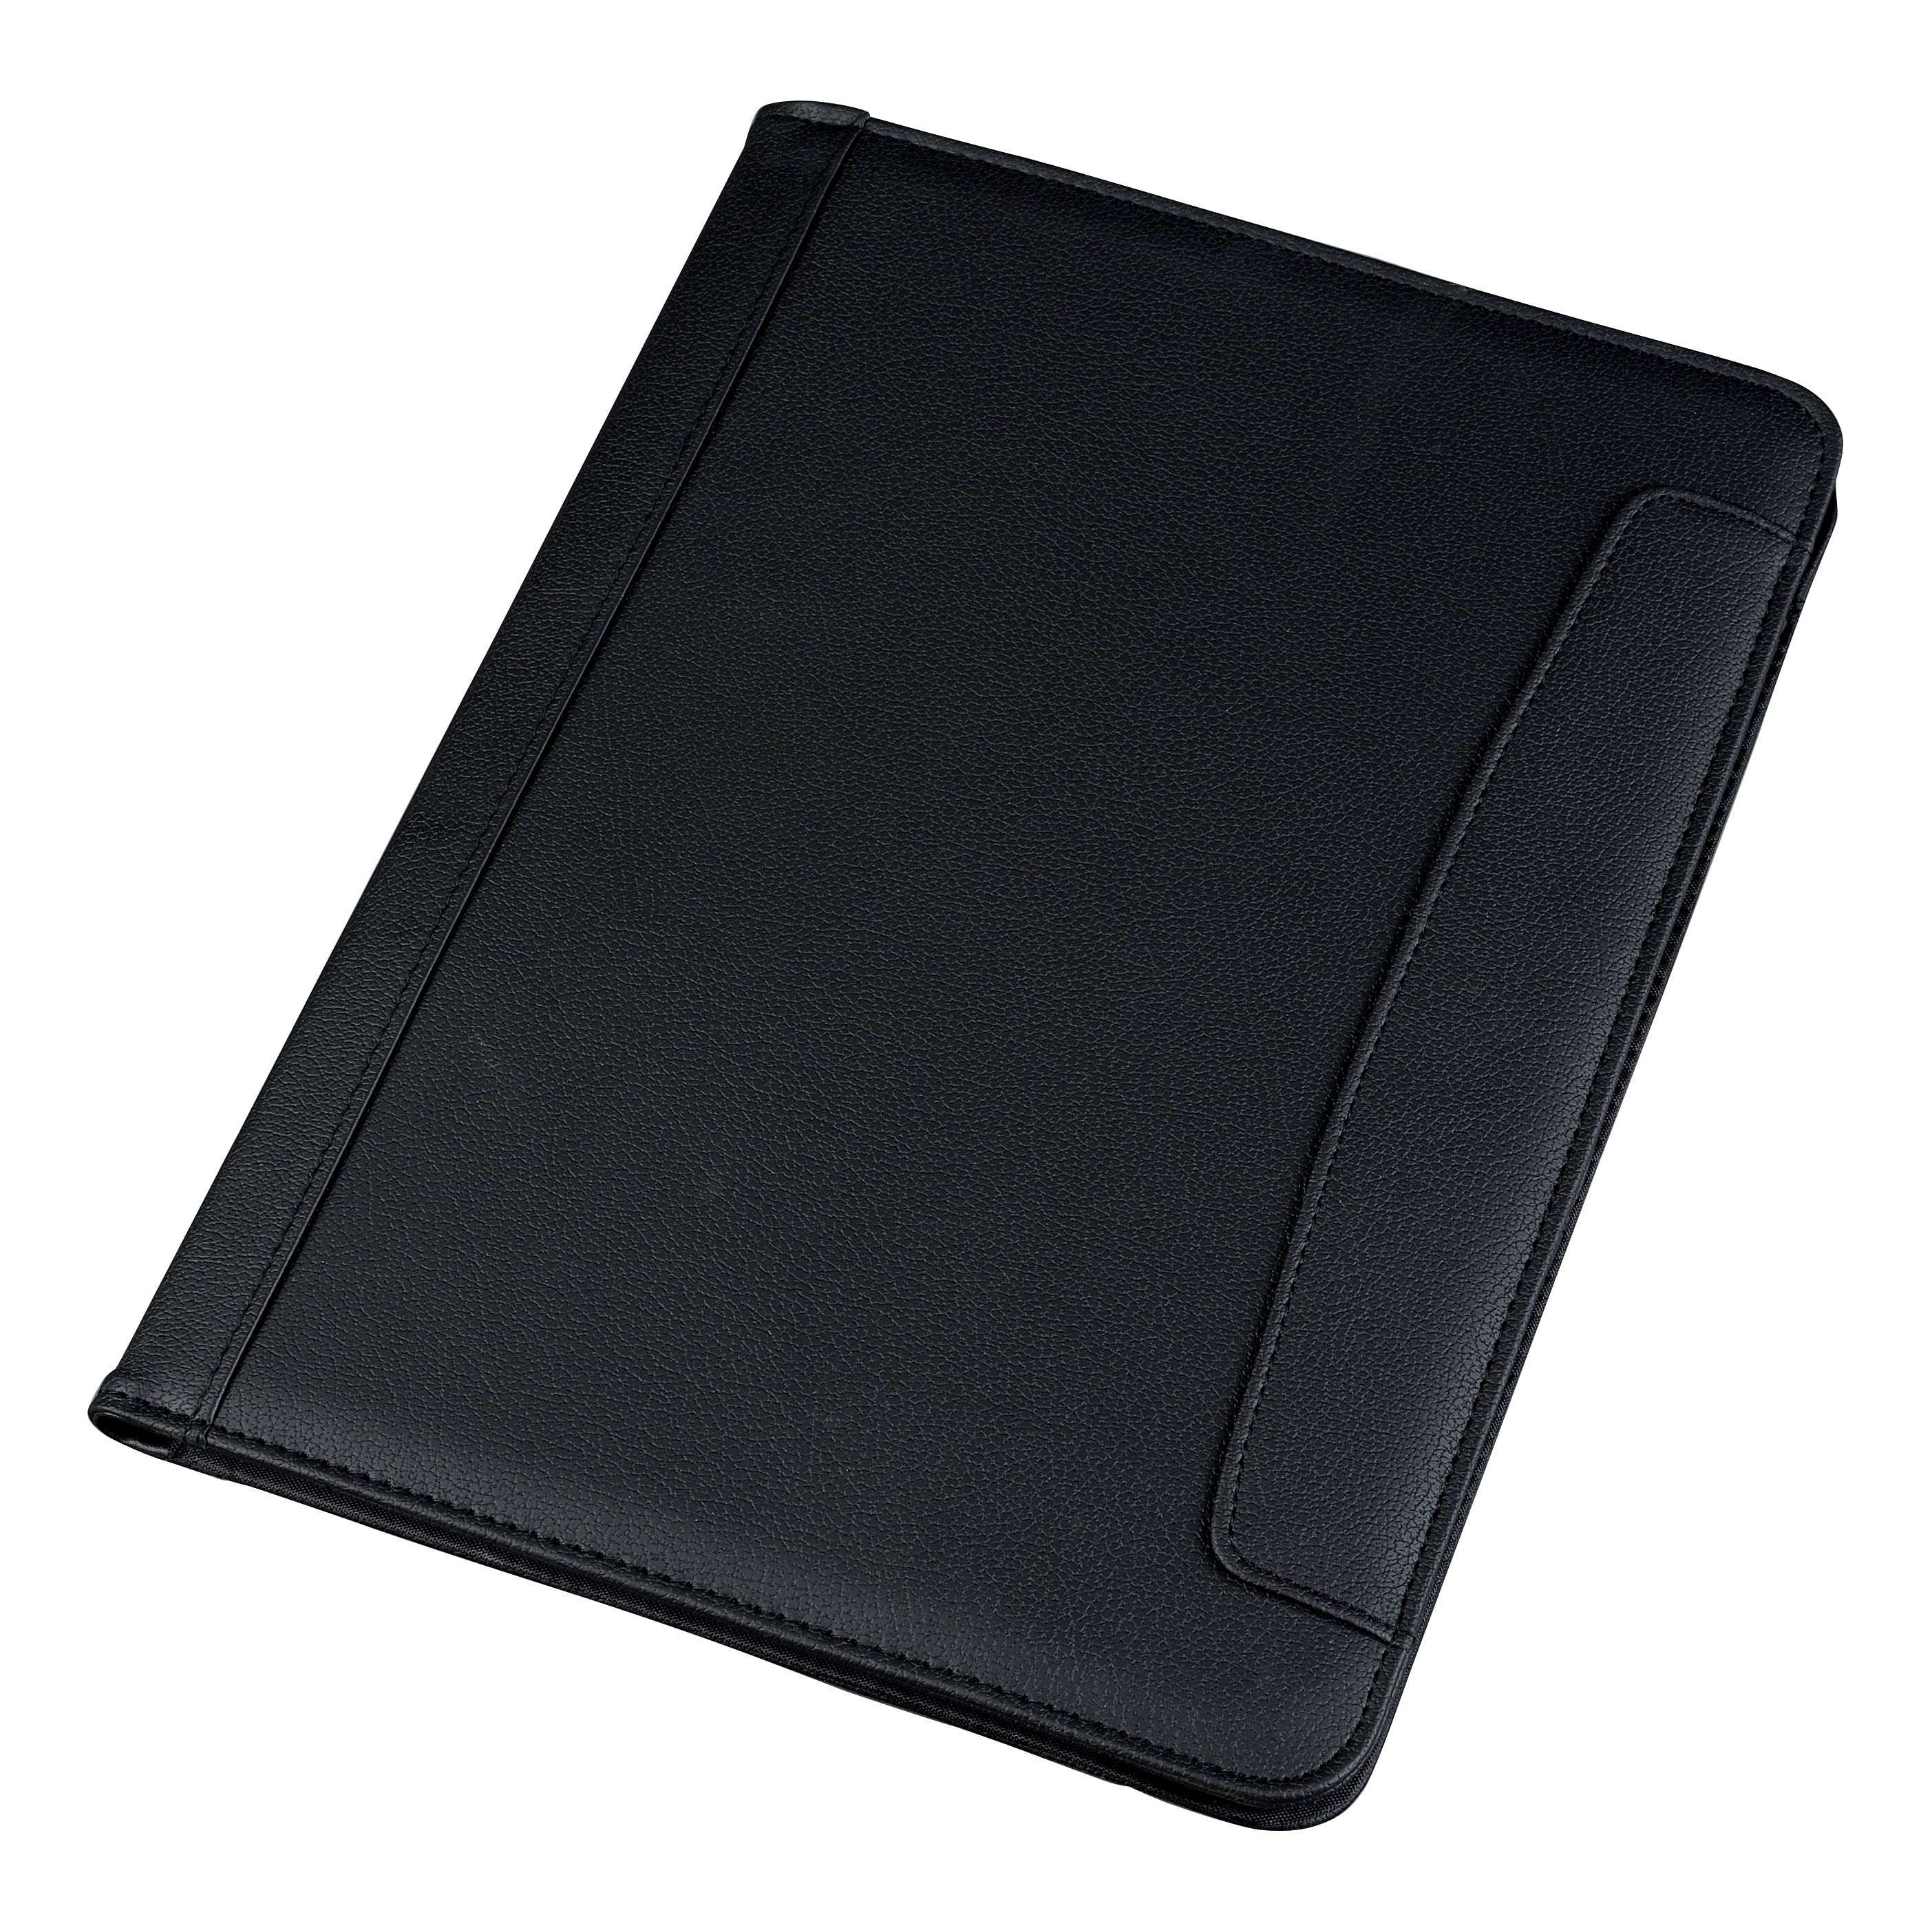 5 Star Conference Folder Folio Leather Look Writing Case A4 Black